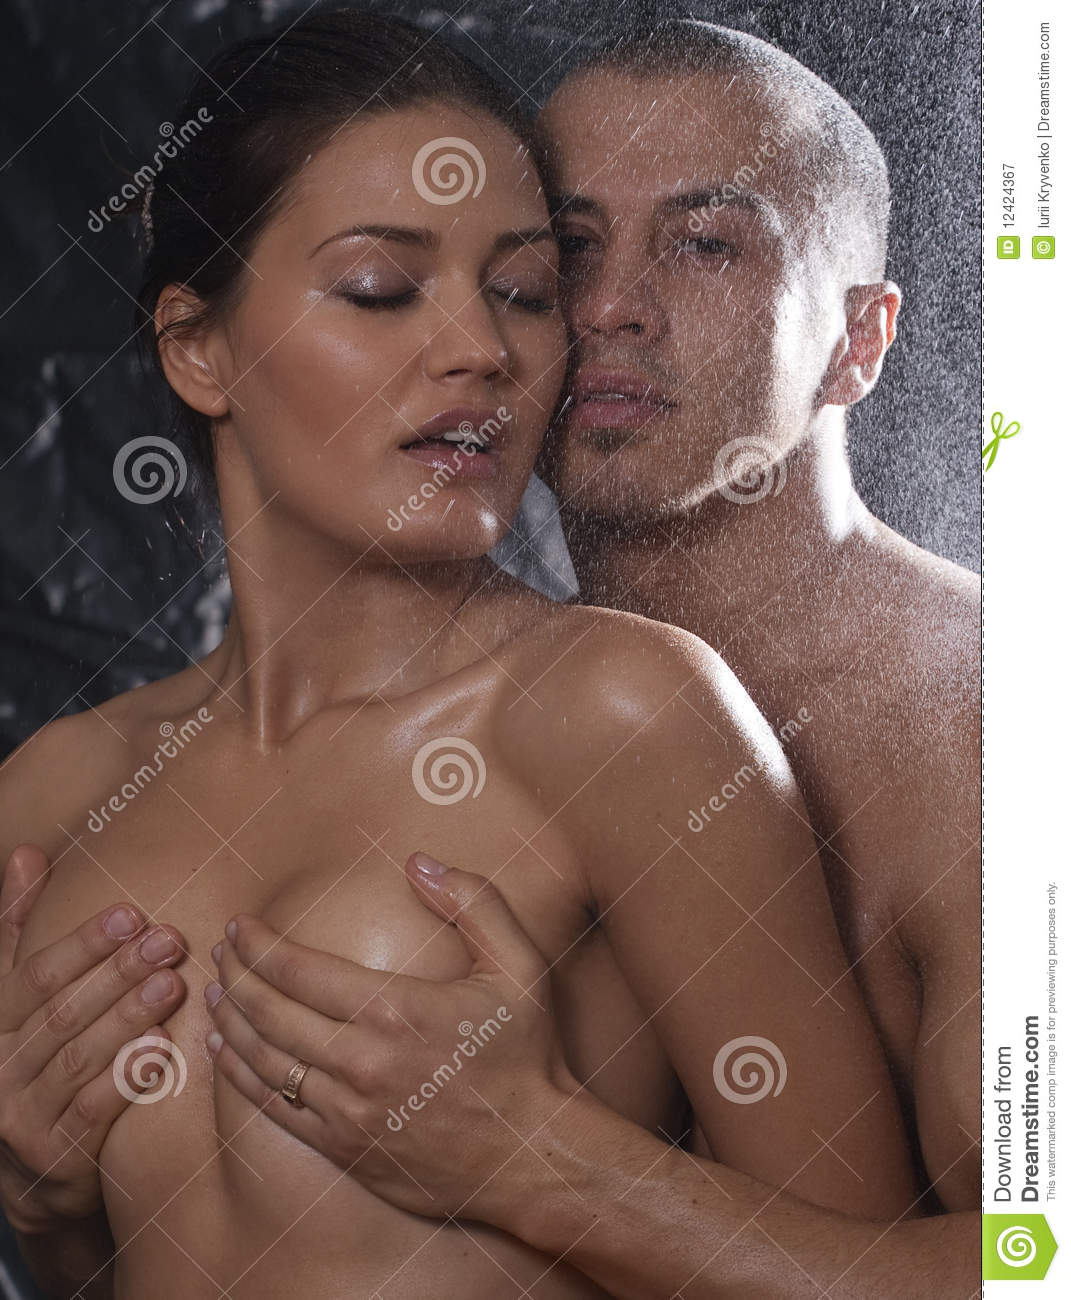 Male and female sex breast